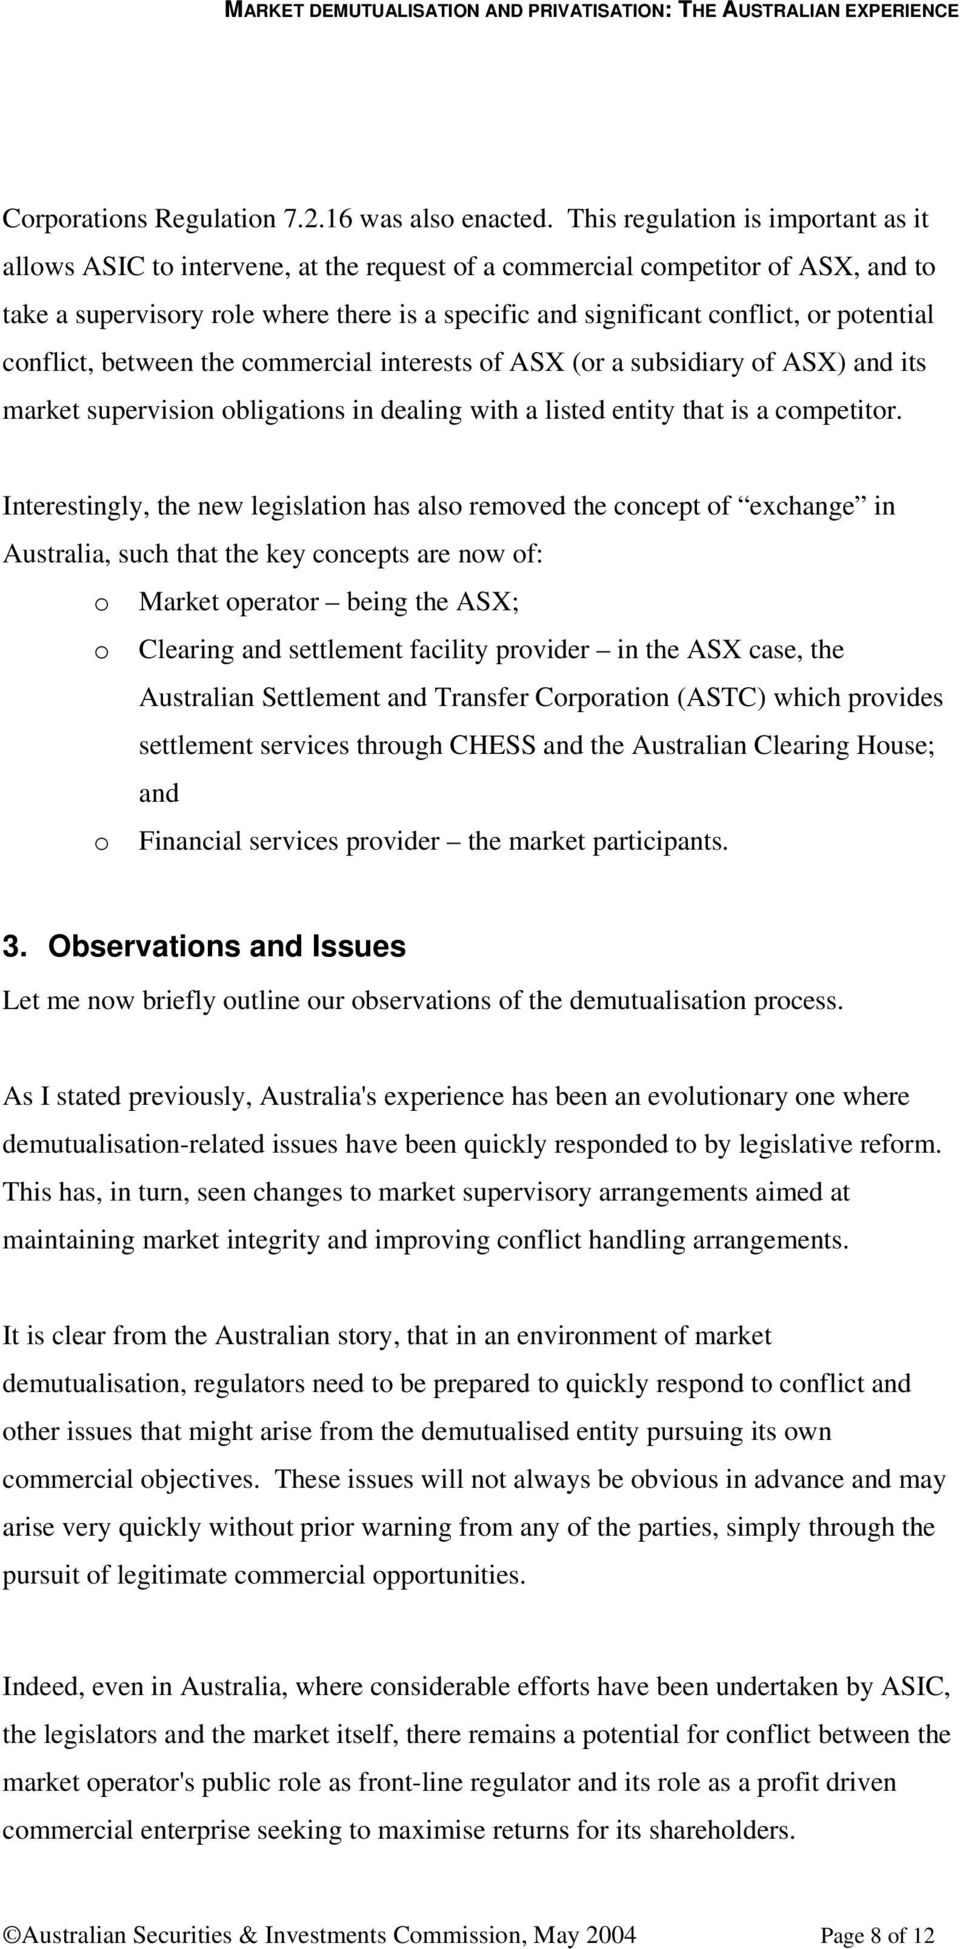 potential conflict, between the commercial interests of ASX (or a subsidiary of ASX) and its market supervision obligations in dealing with a listed entity that is a competitor.